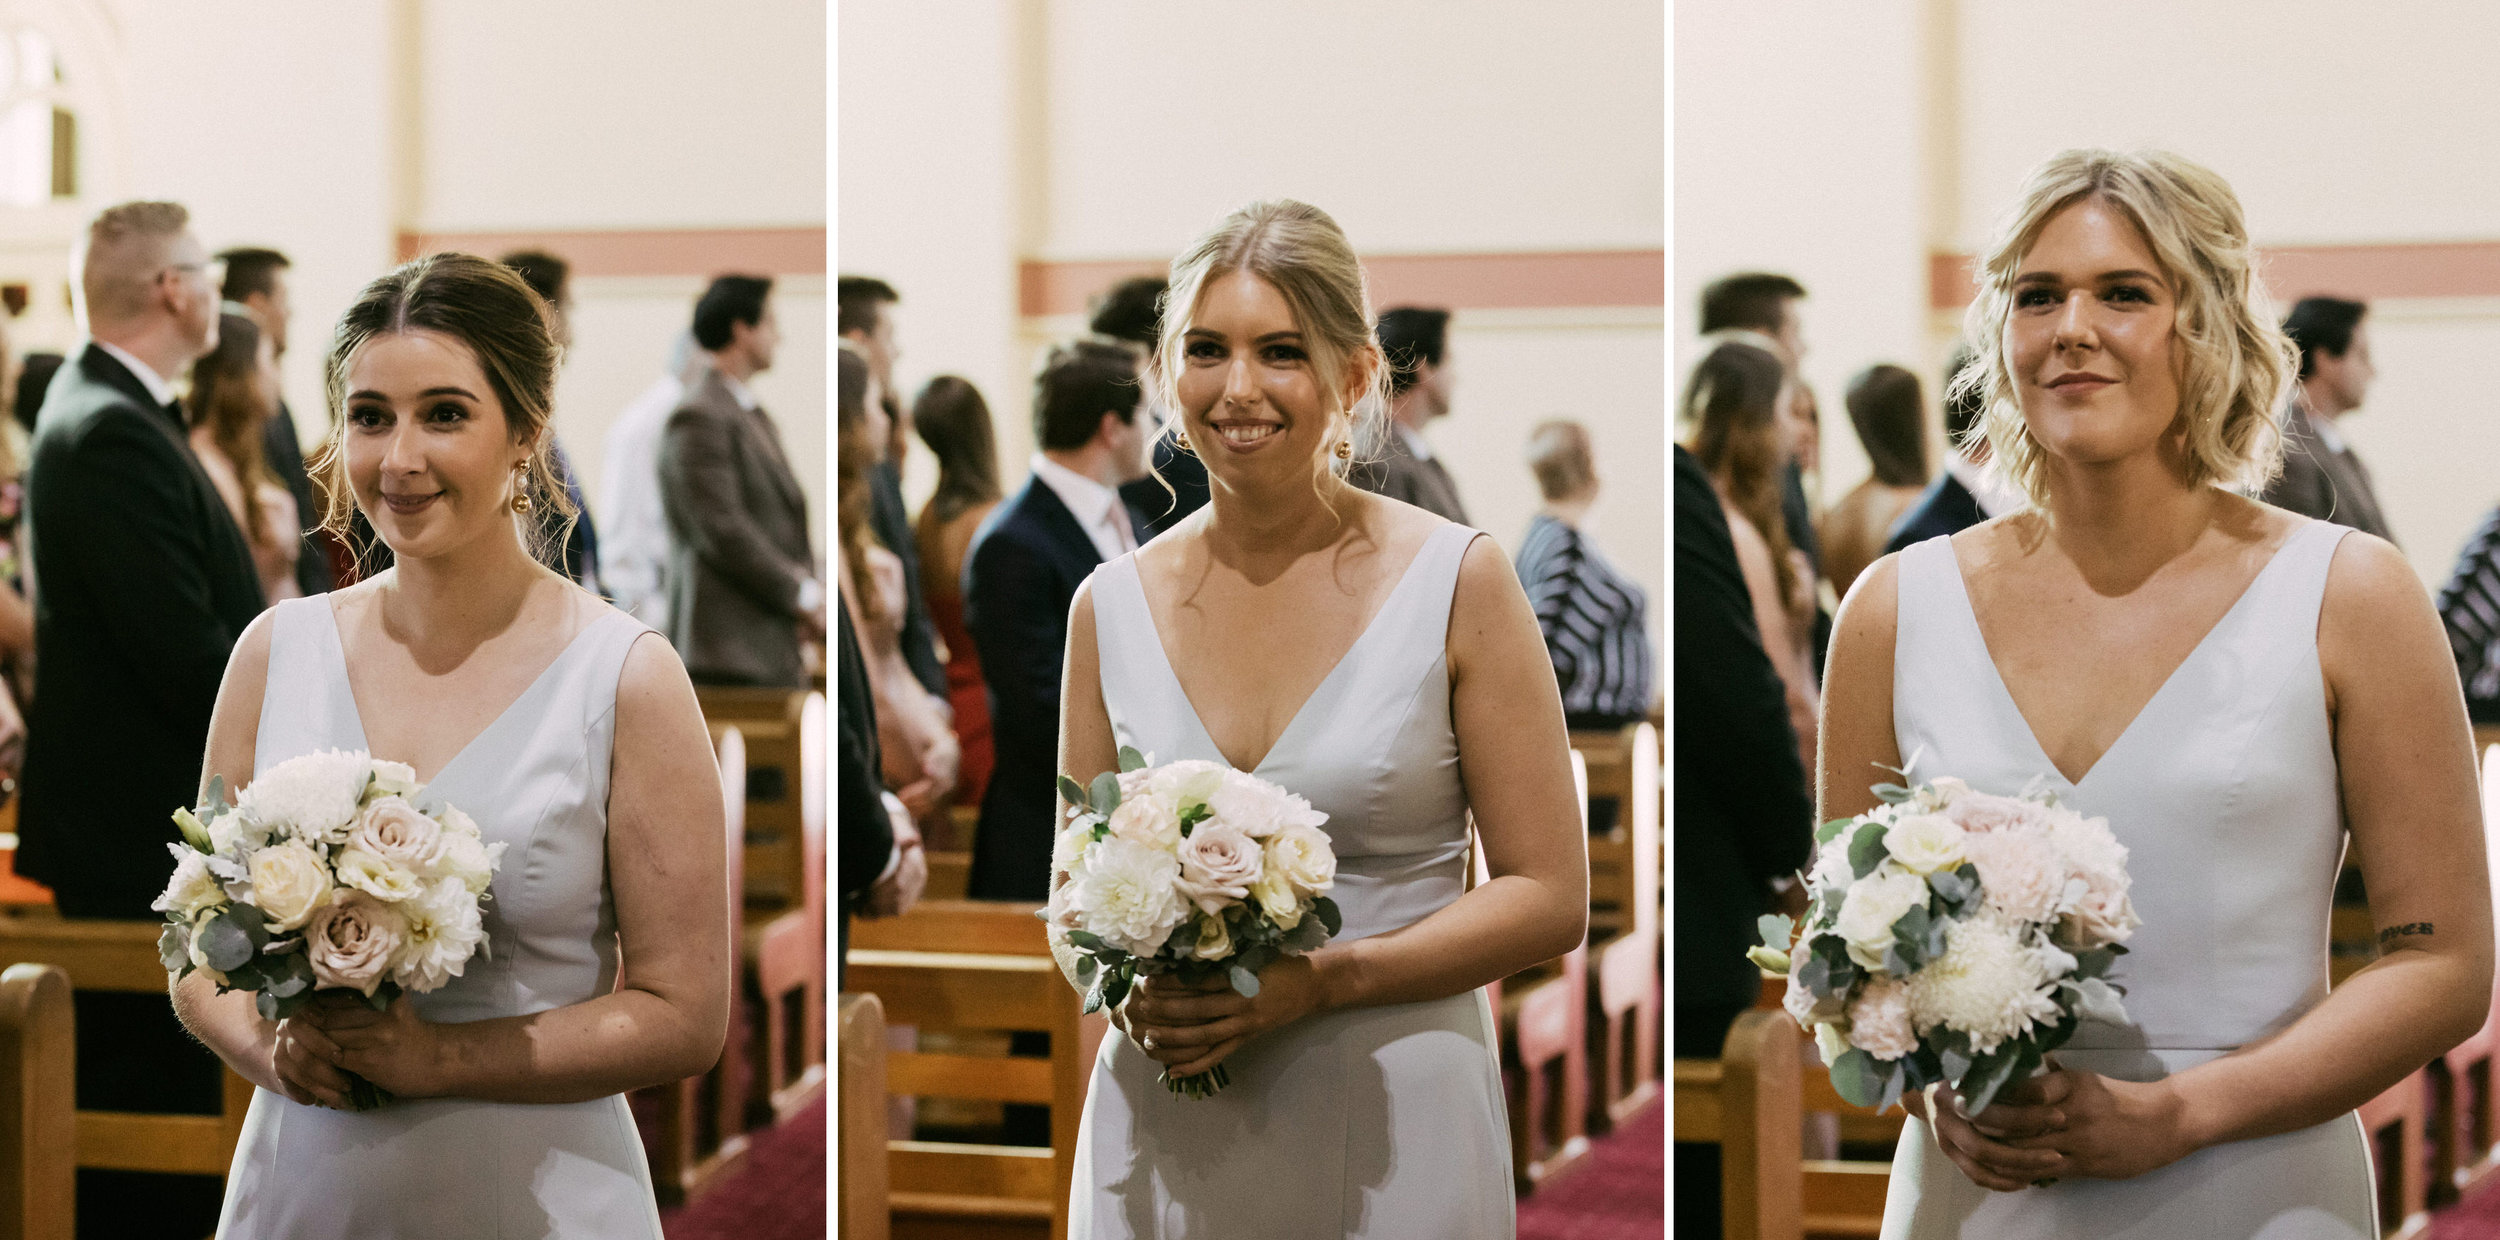 Adelaide Wedding 2019 054.jpg